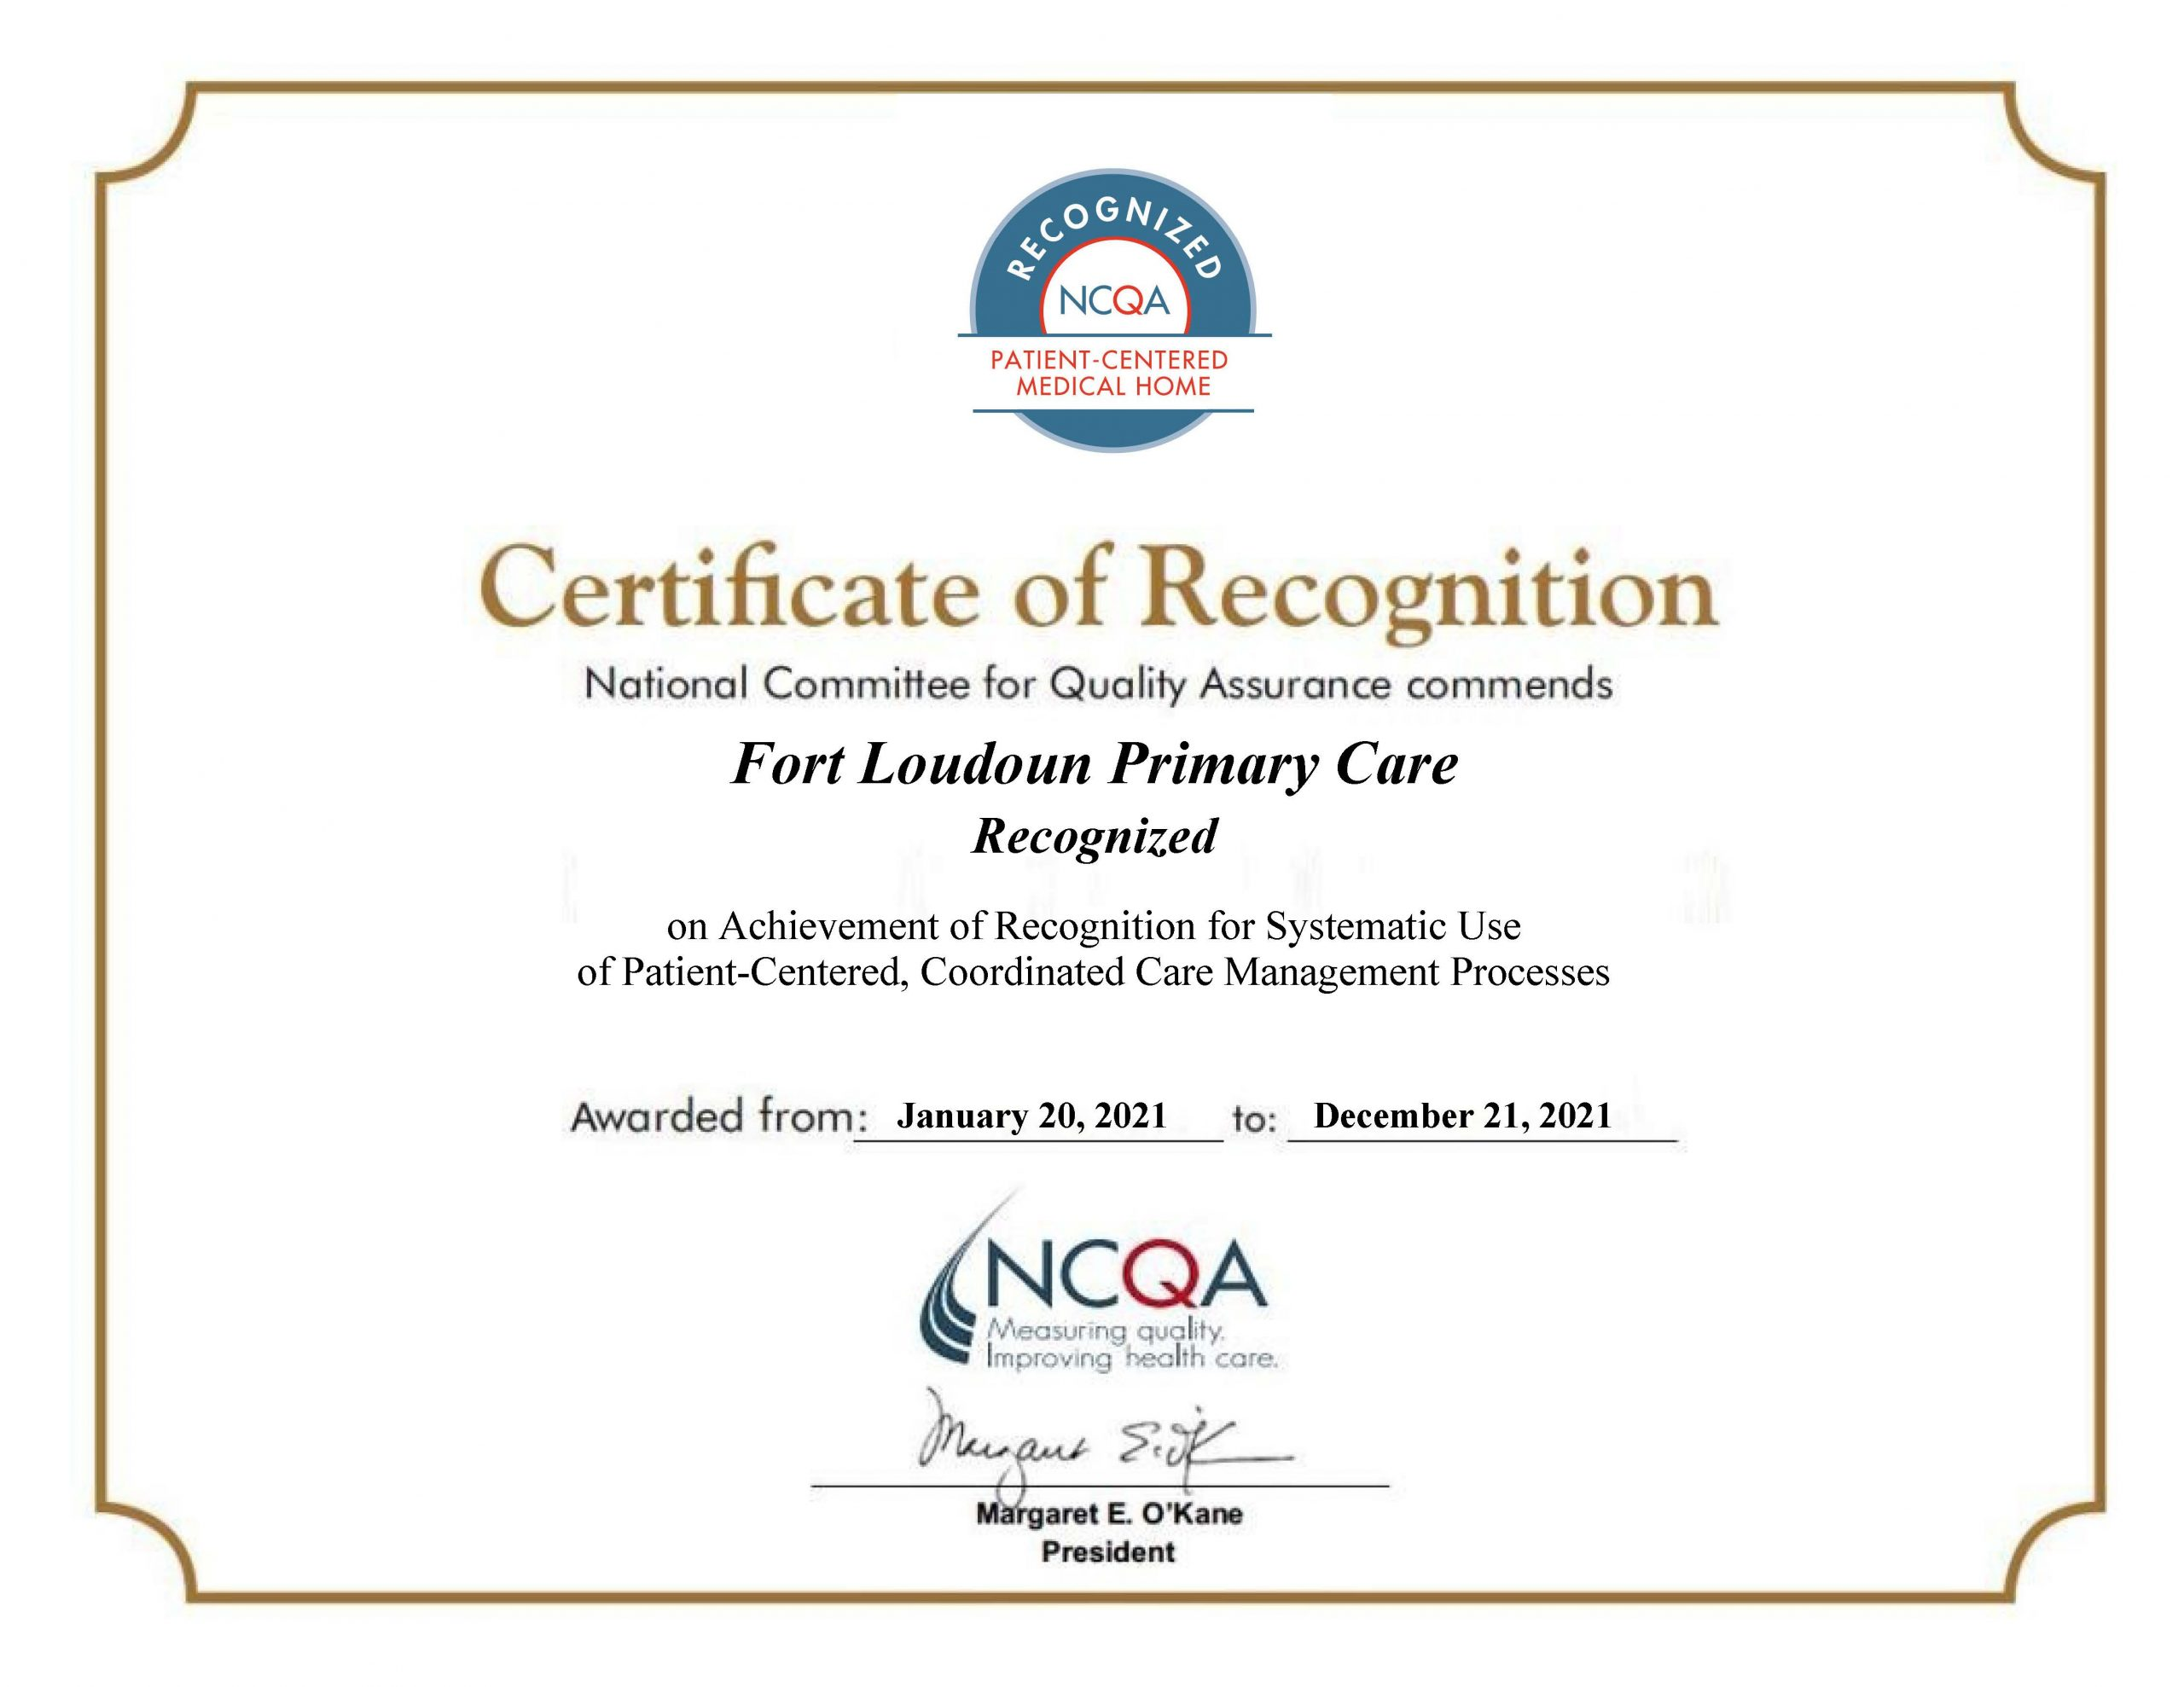 Fort Loudoun Primary Care Recognized as PCMH